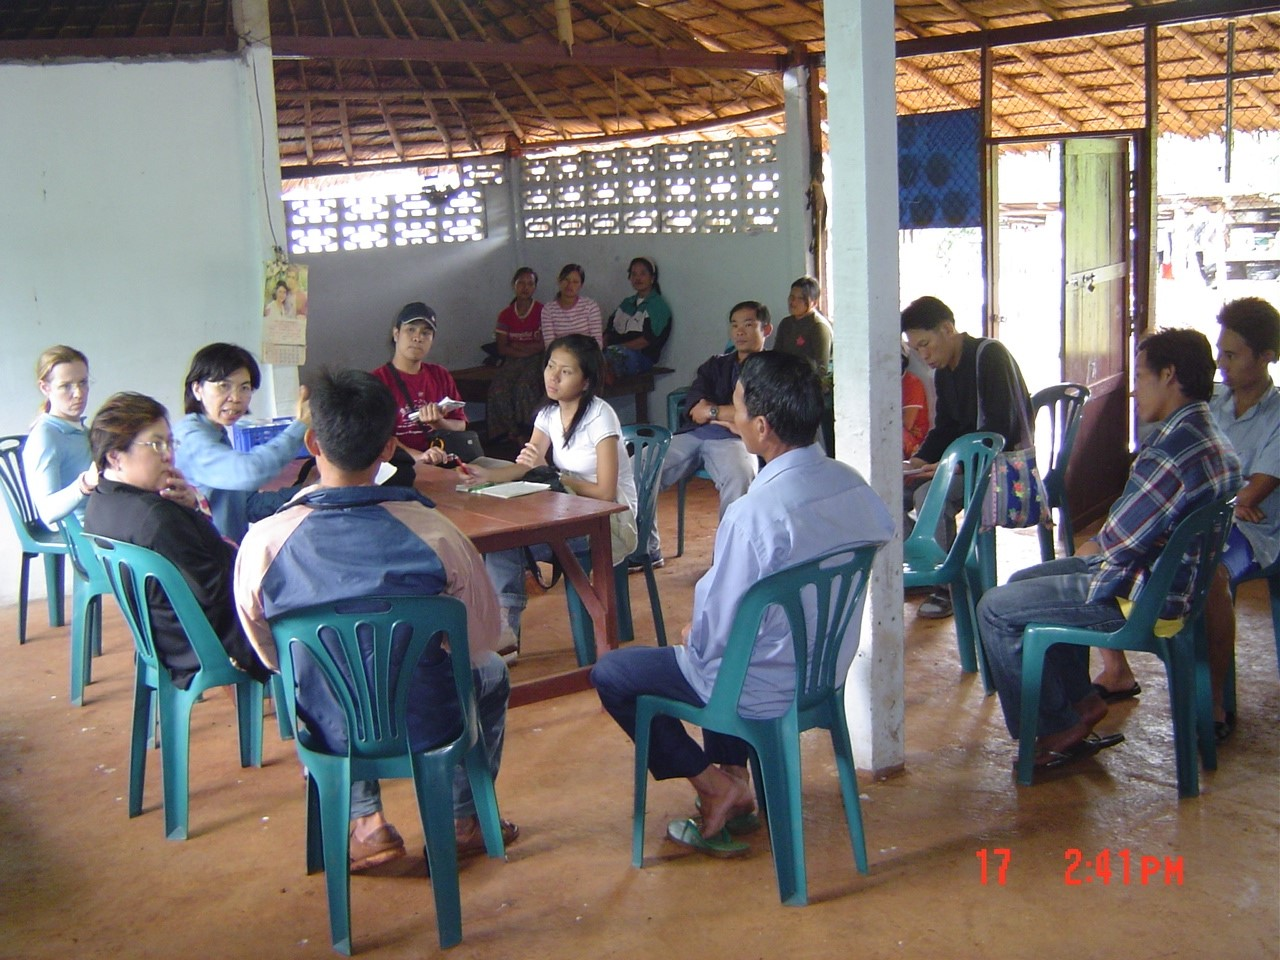 Vietnam-Thailand_Dr. Penporn meeting, Principal Research of the JDR 3RD Vietnam-Thailand research team, in Conservation Network in the community center.jpg